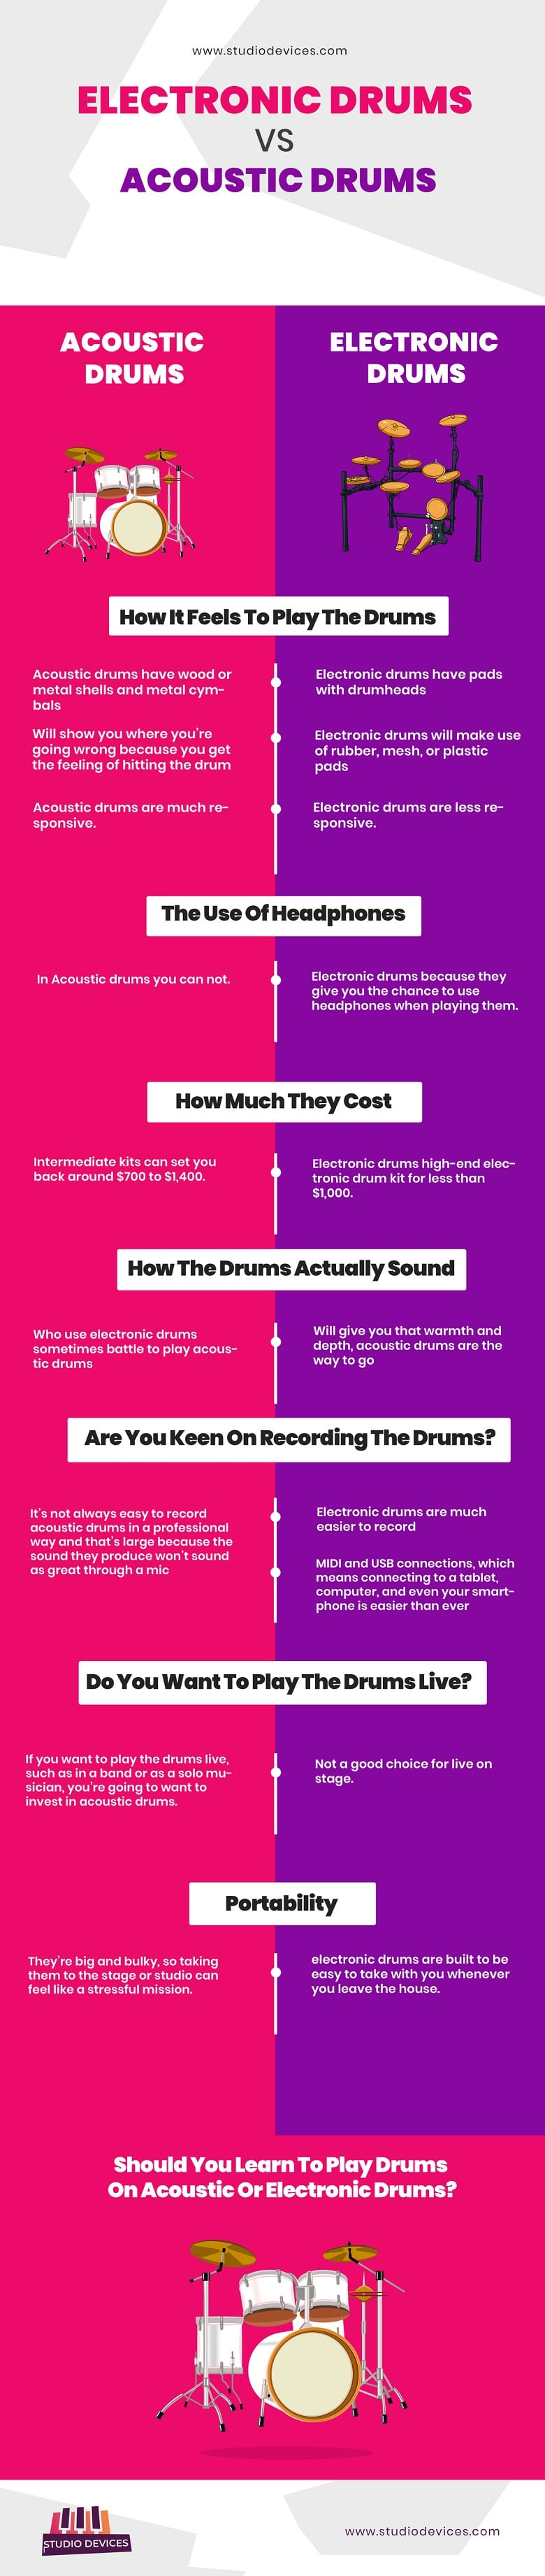 Drums Comparison